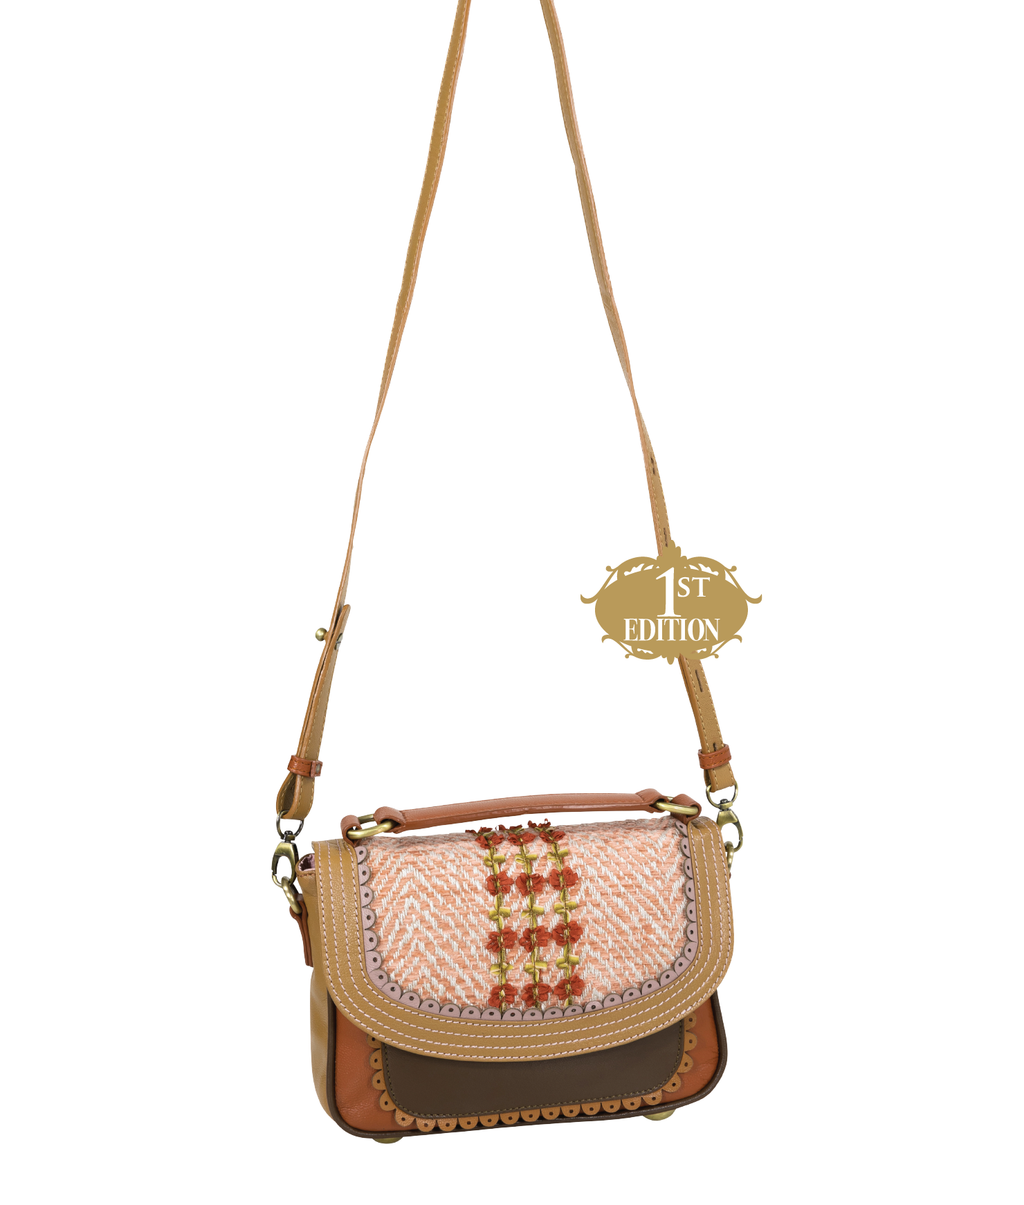 KATE Mini Crossbody - Boheme - 1st Edition